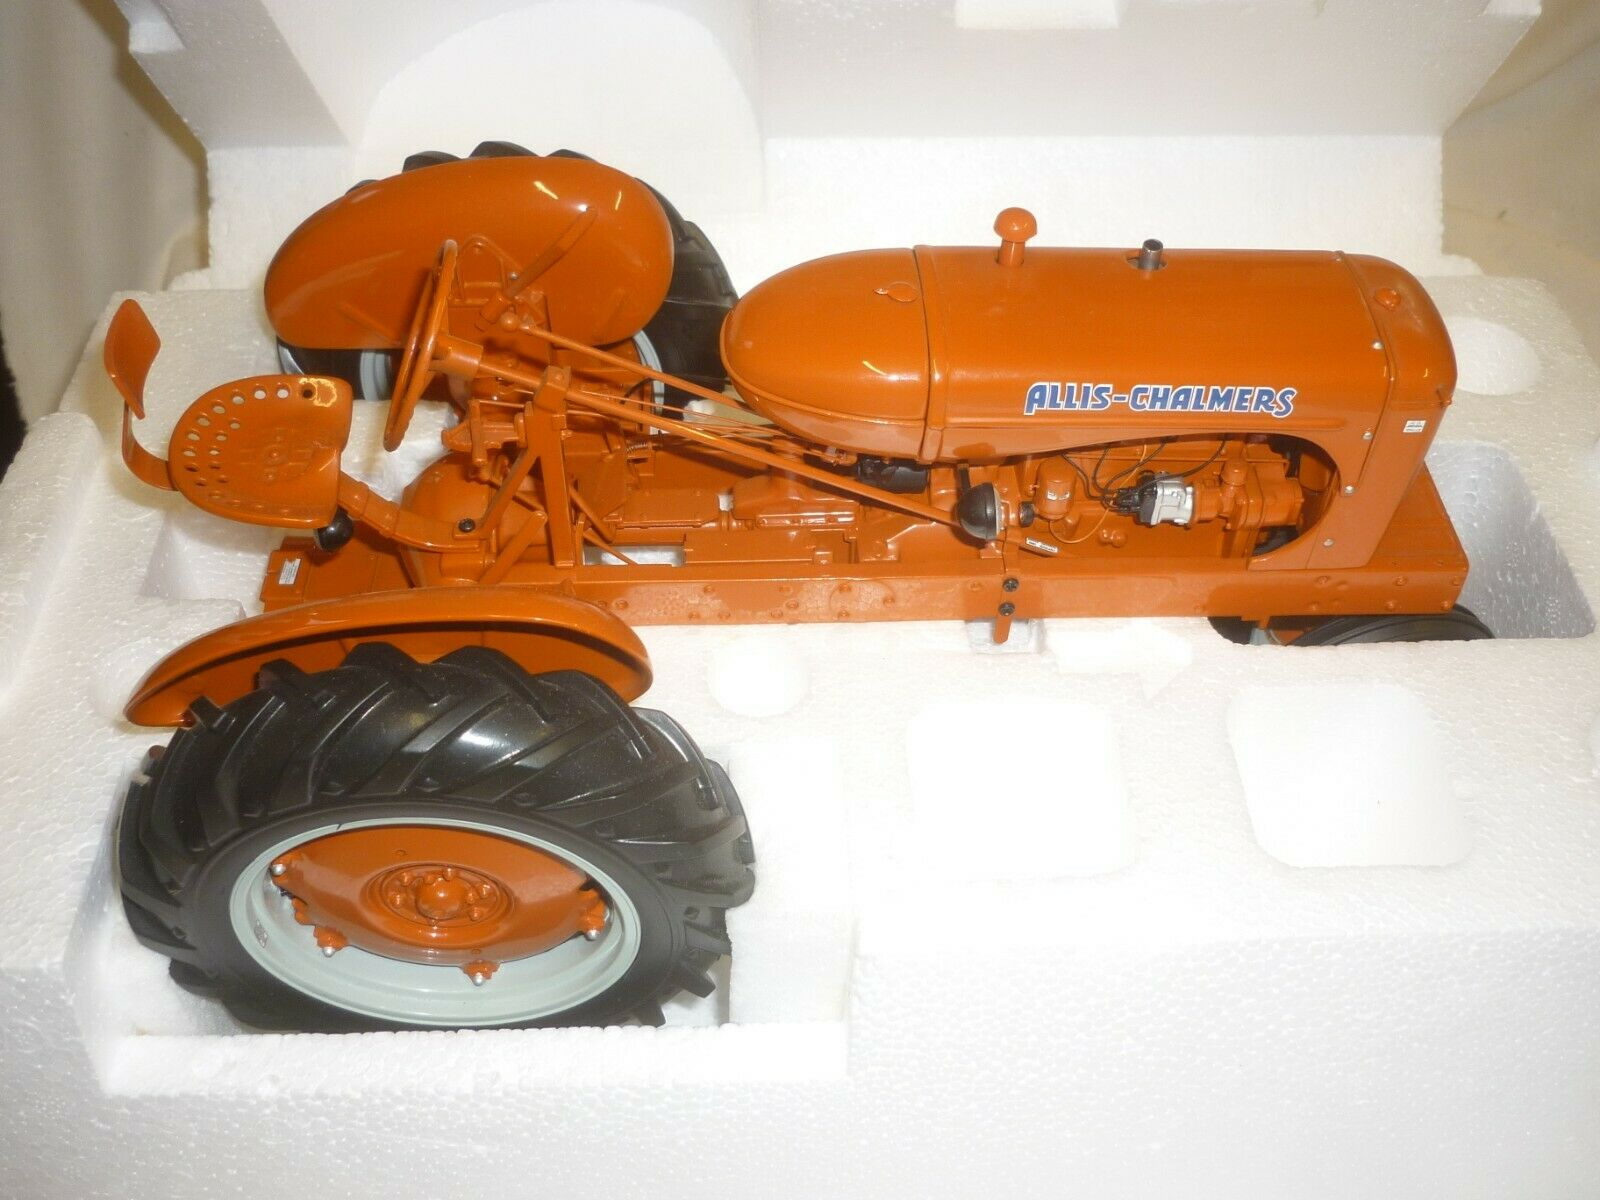 Franklin Comme neuf scale model of an ALLIS CHALMERS WC tracteur, Boxed, papiers